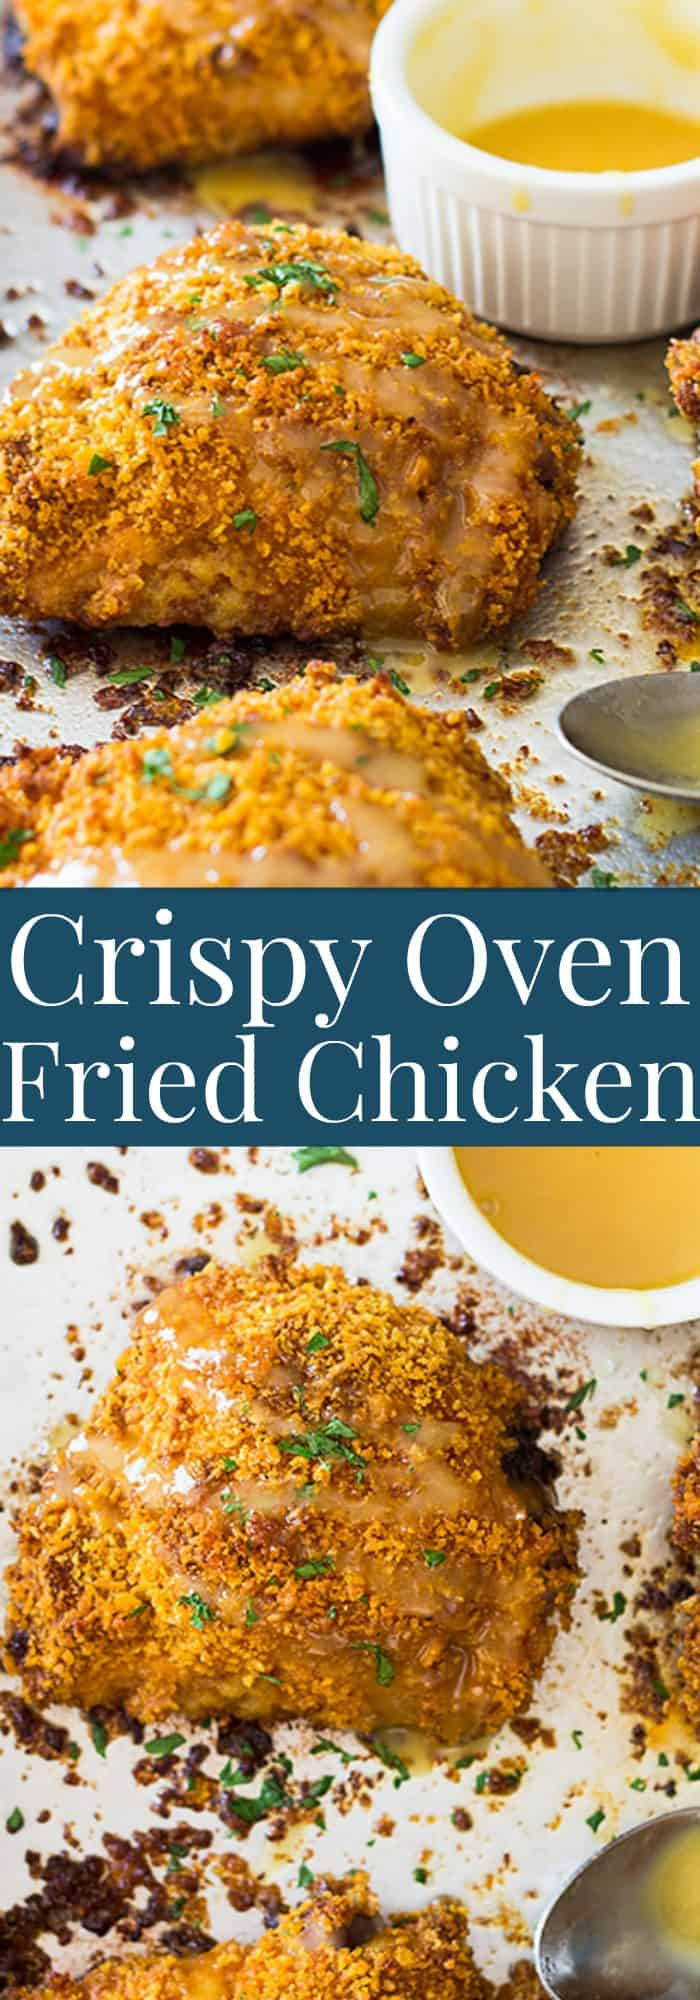 These Crispy Oven Fried Chicken Thighs are a great way to enjoy fried chicken in a healthier way! | www.countrysidecravings.com